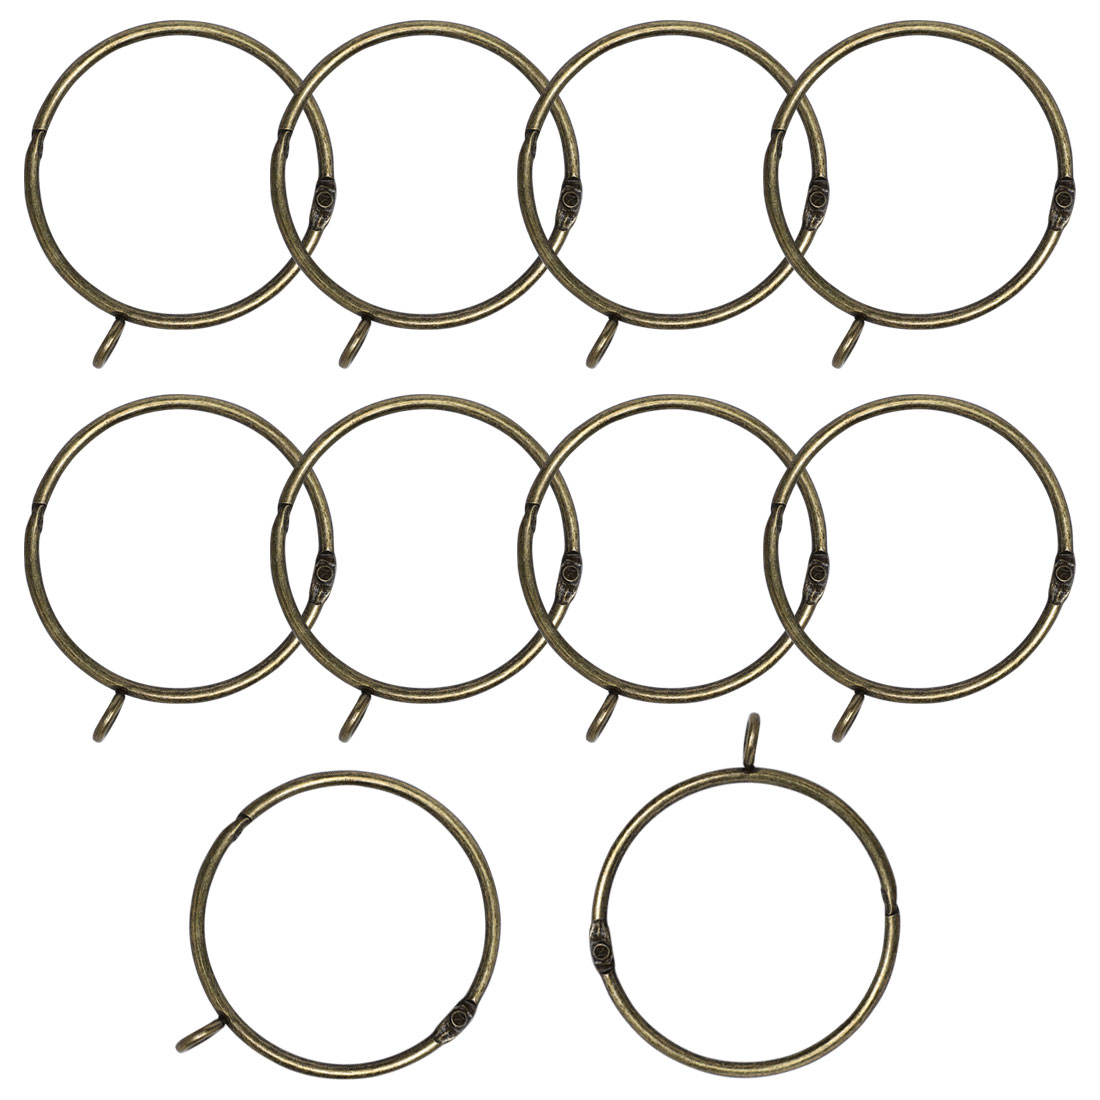 "2.5"" Metal Curtain Rings 10pcs with Eyelet for Shower Curtain, Bronze Tone"